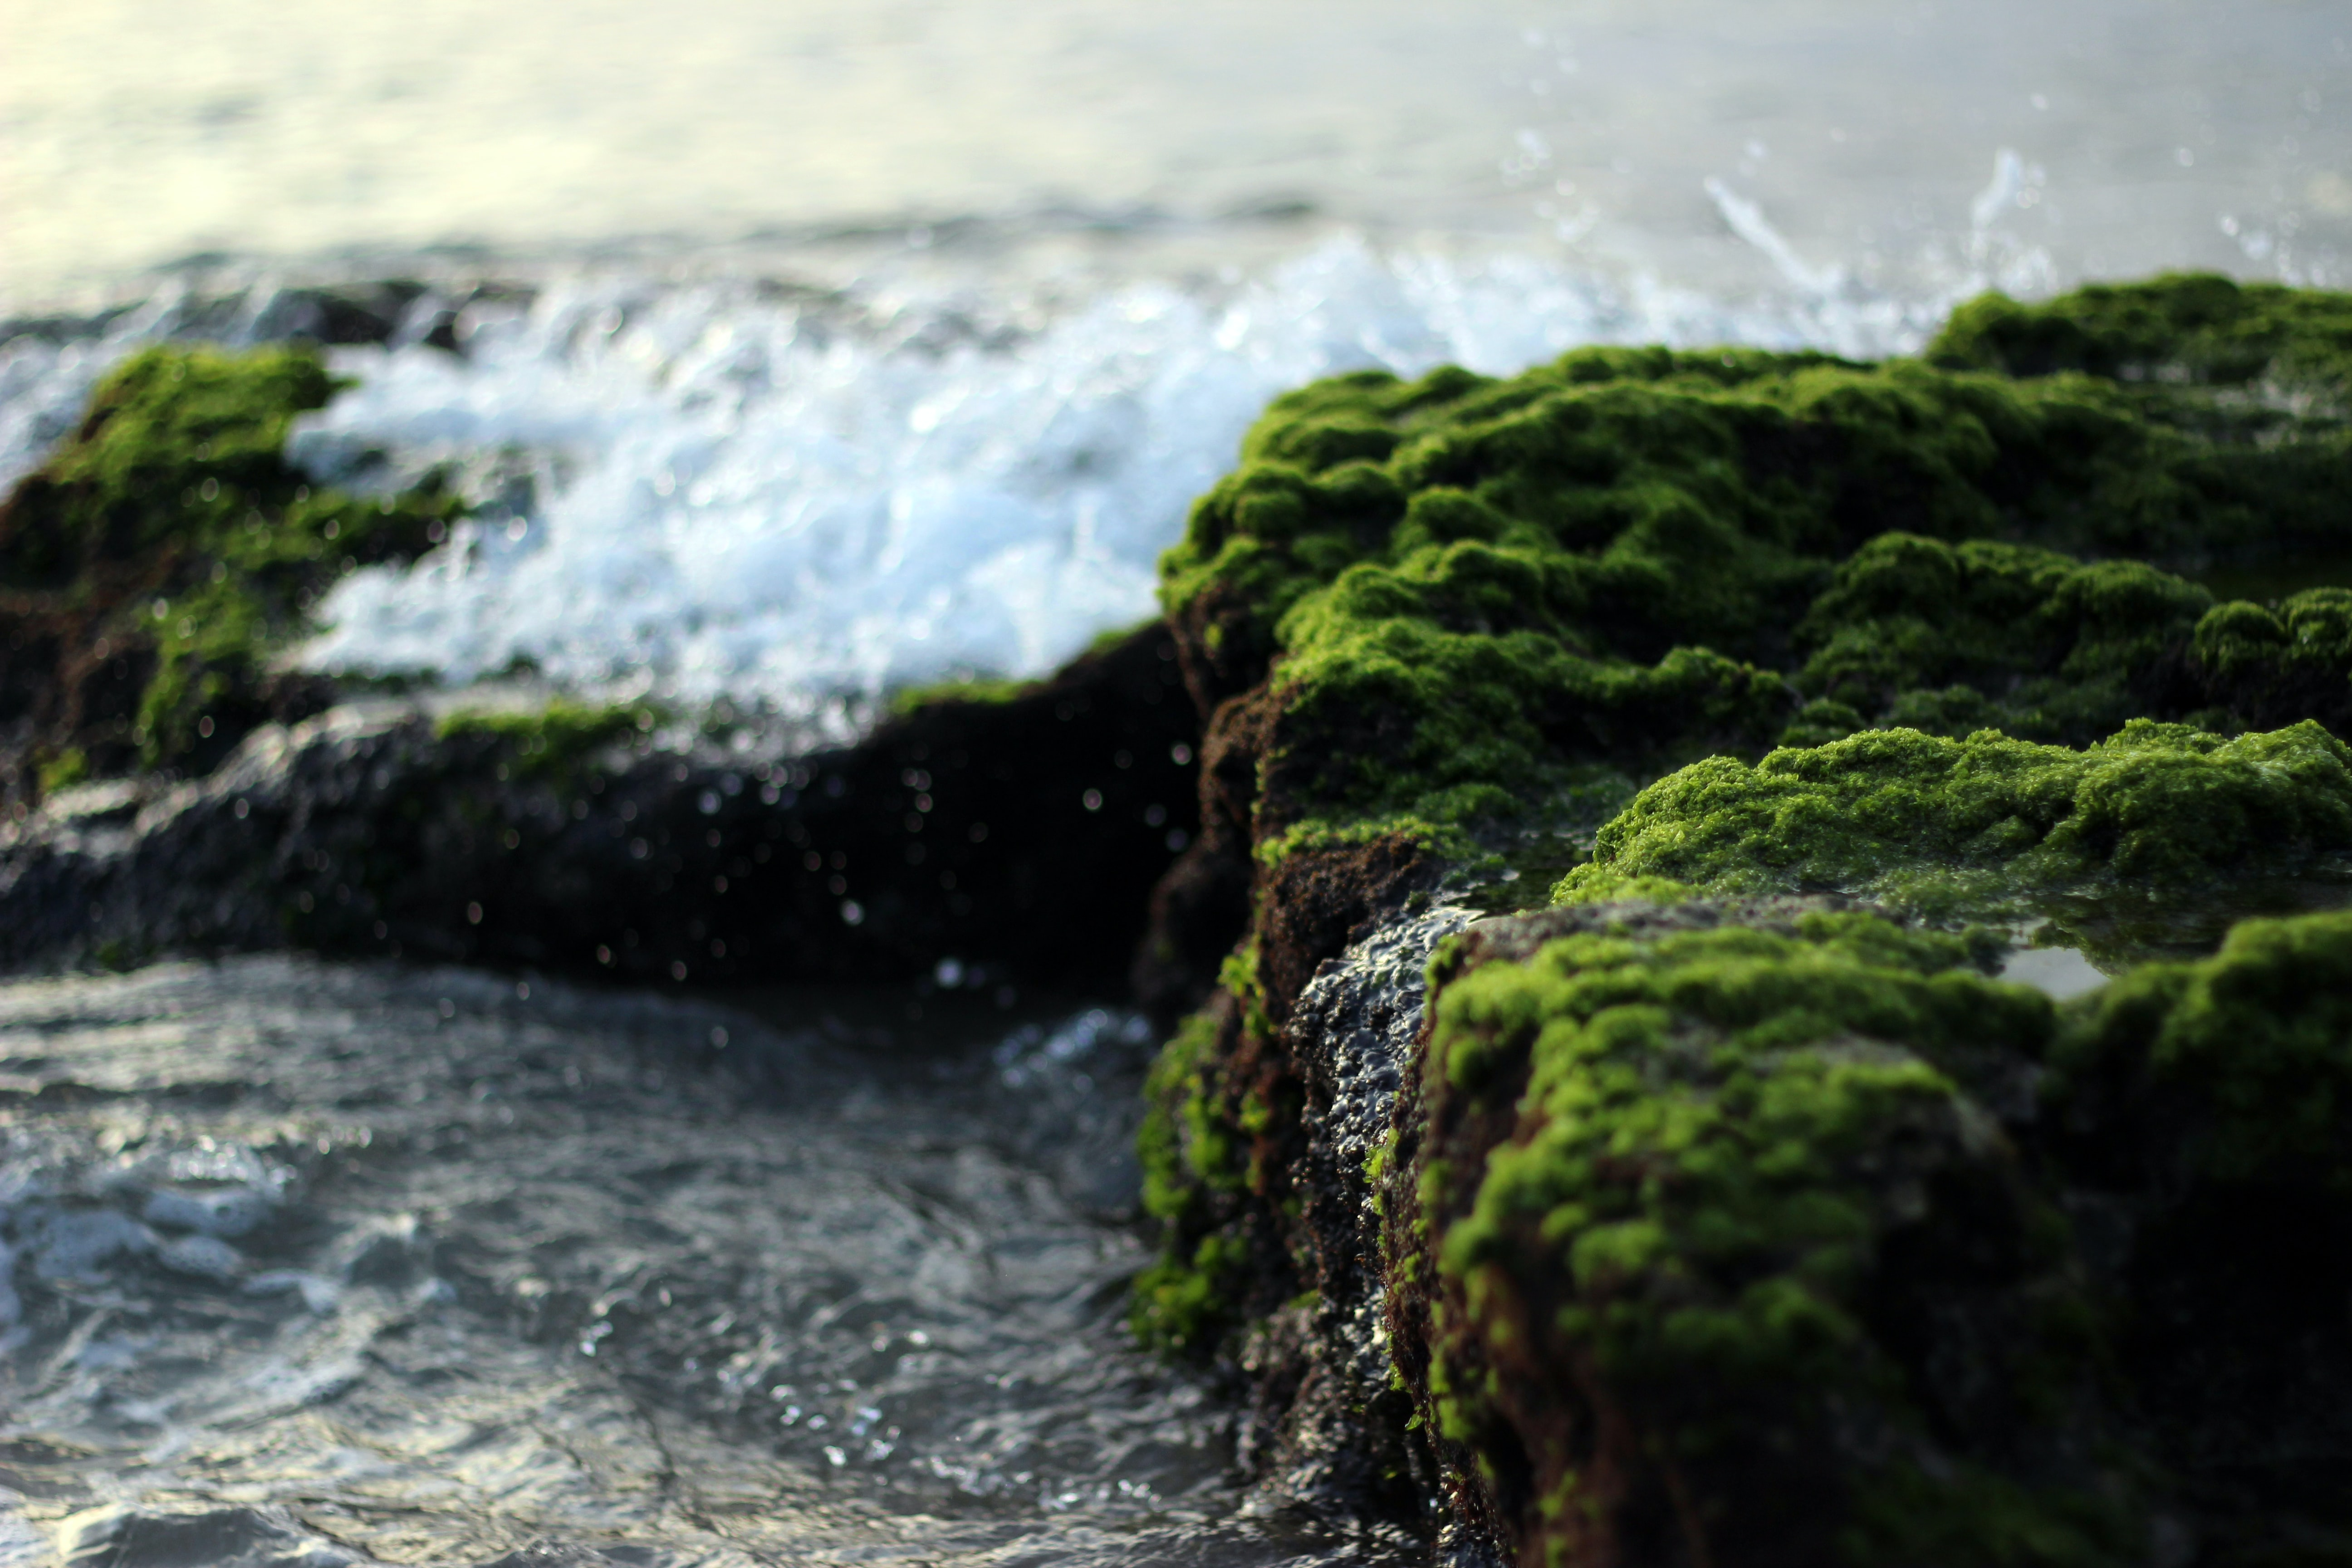 A close-up of sea waves crashing against mossy rocks